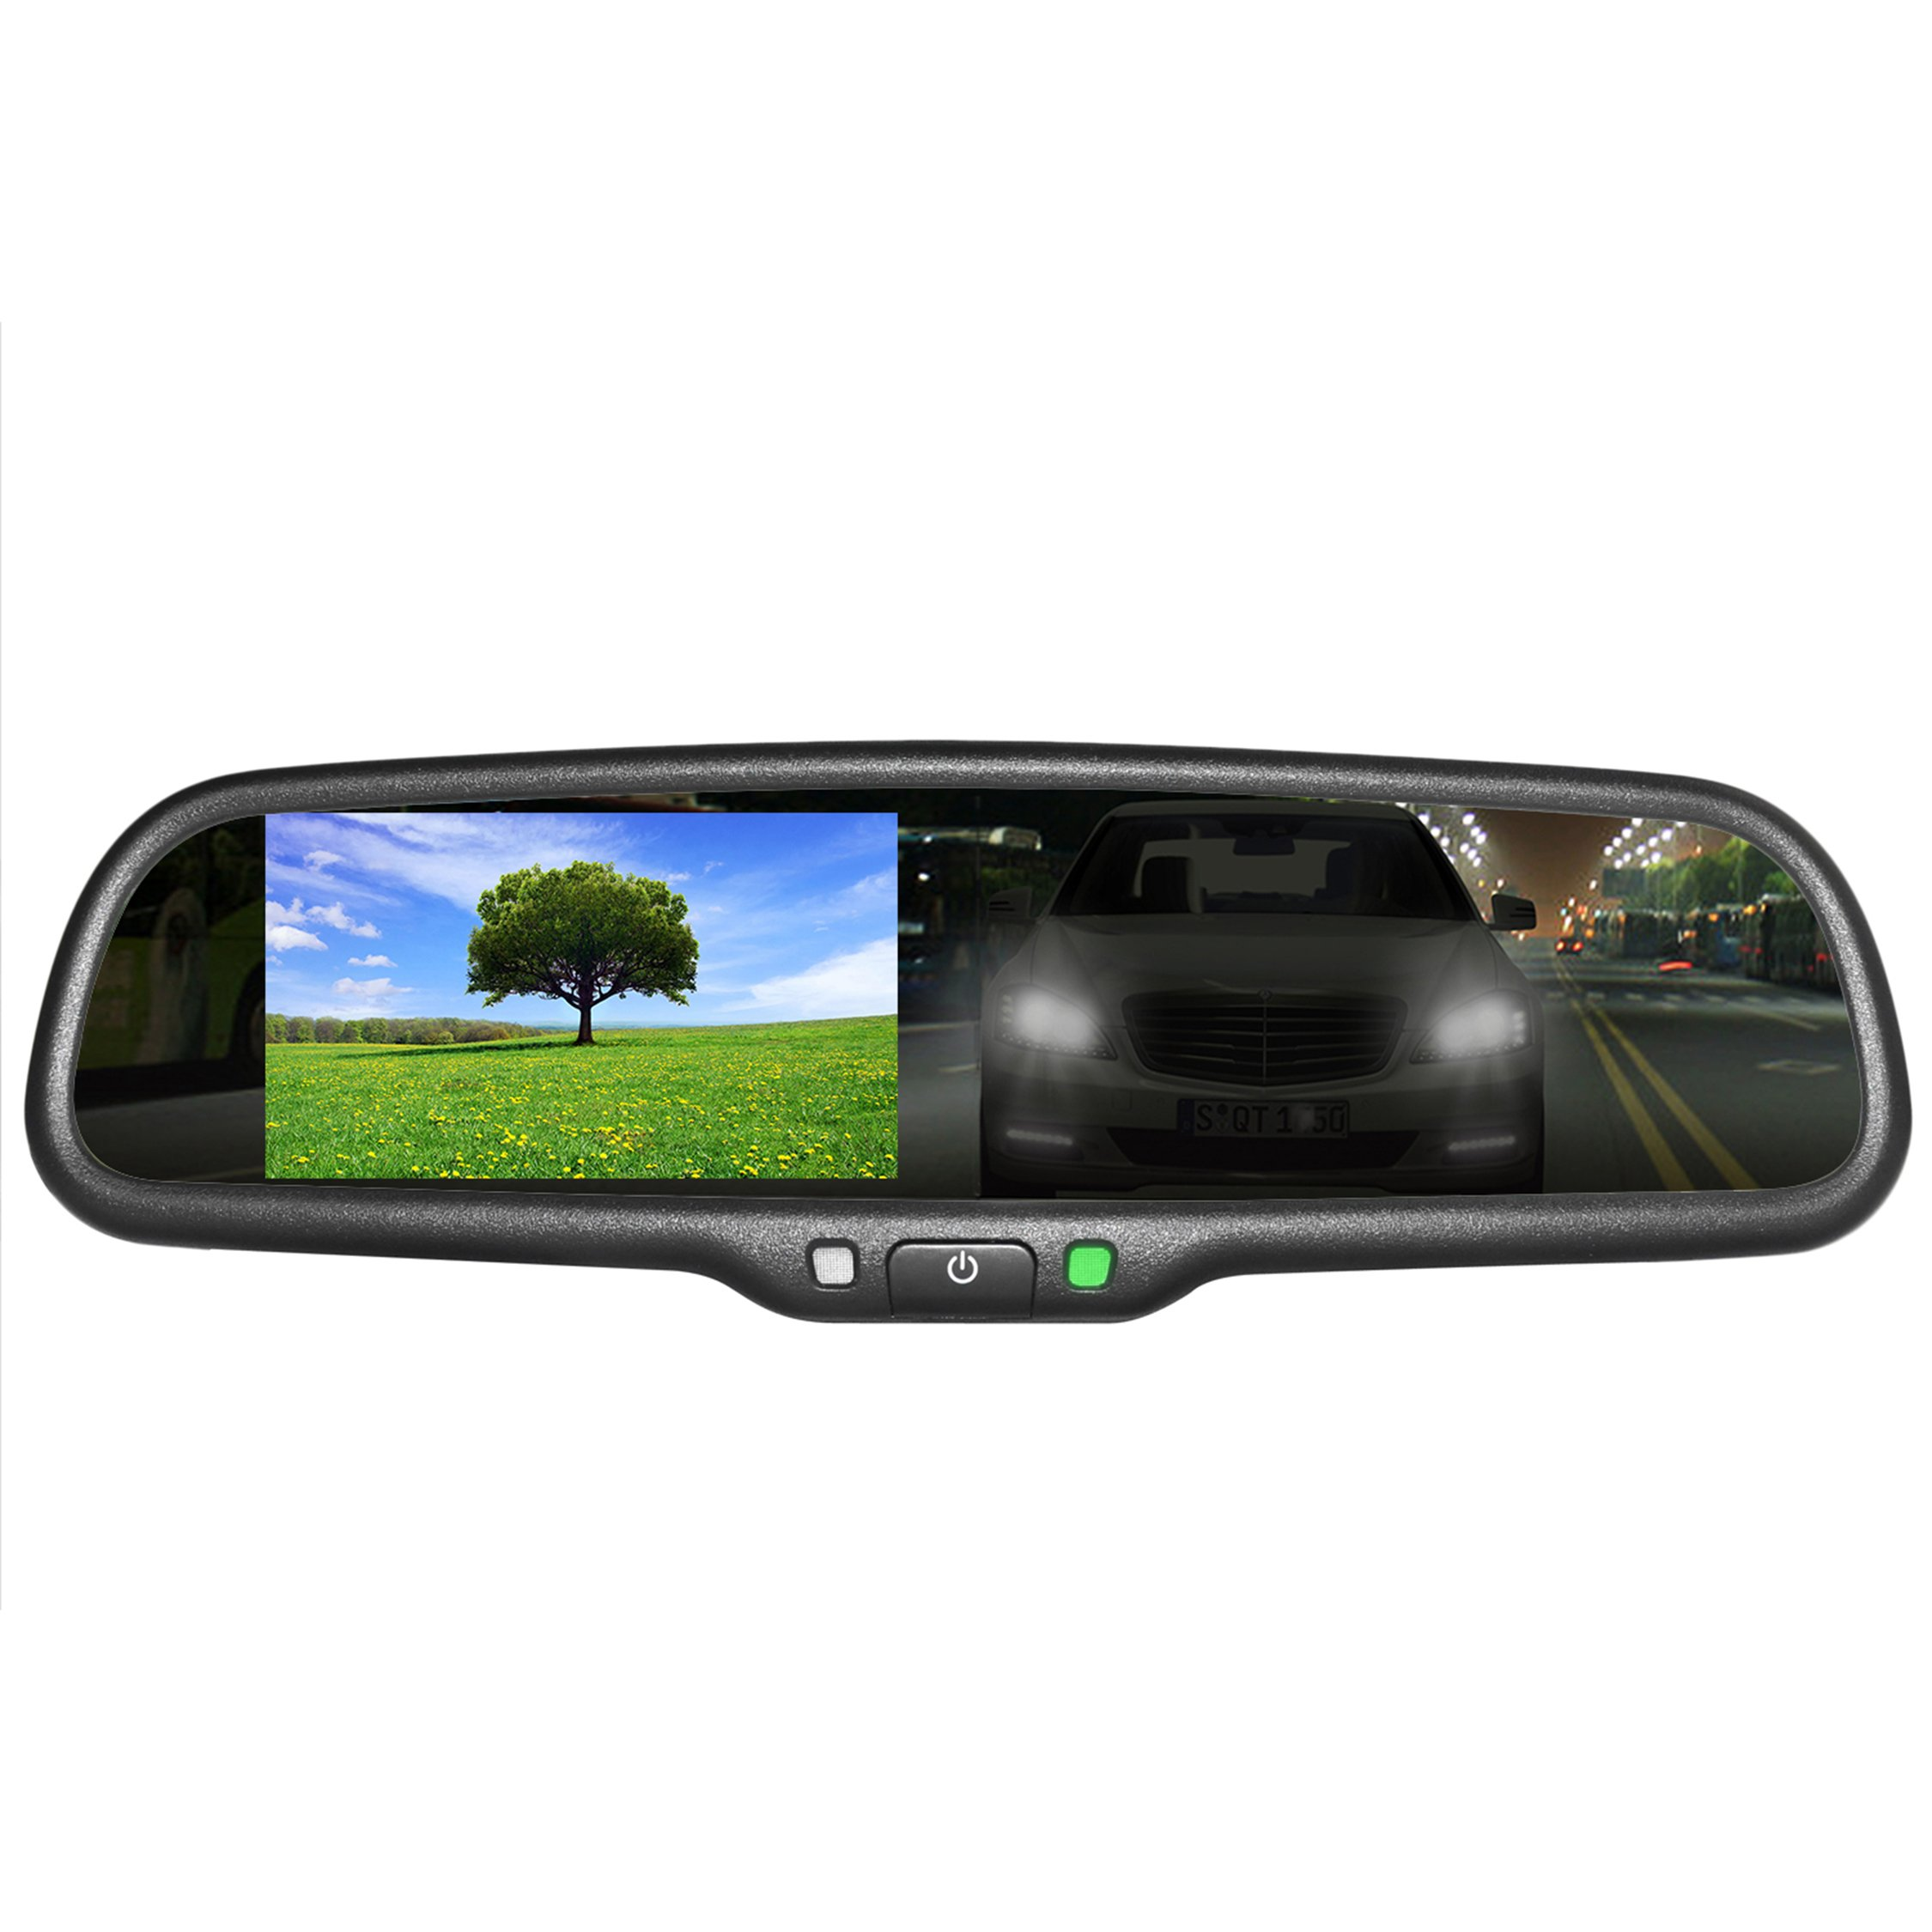 Master Tailgaters OEM Rear View Mirror with 4.3'' Auto Adjusting Brightness LCD + Auto Dimming Mirror - Universal Fit